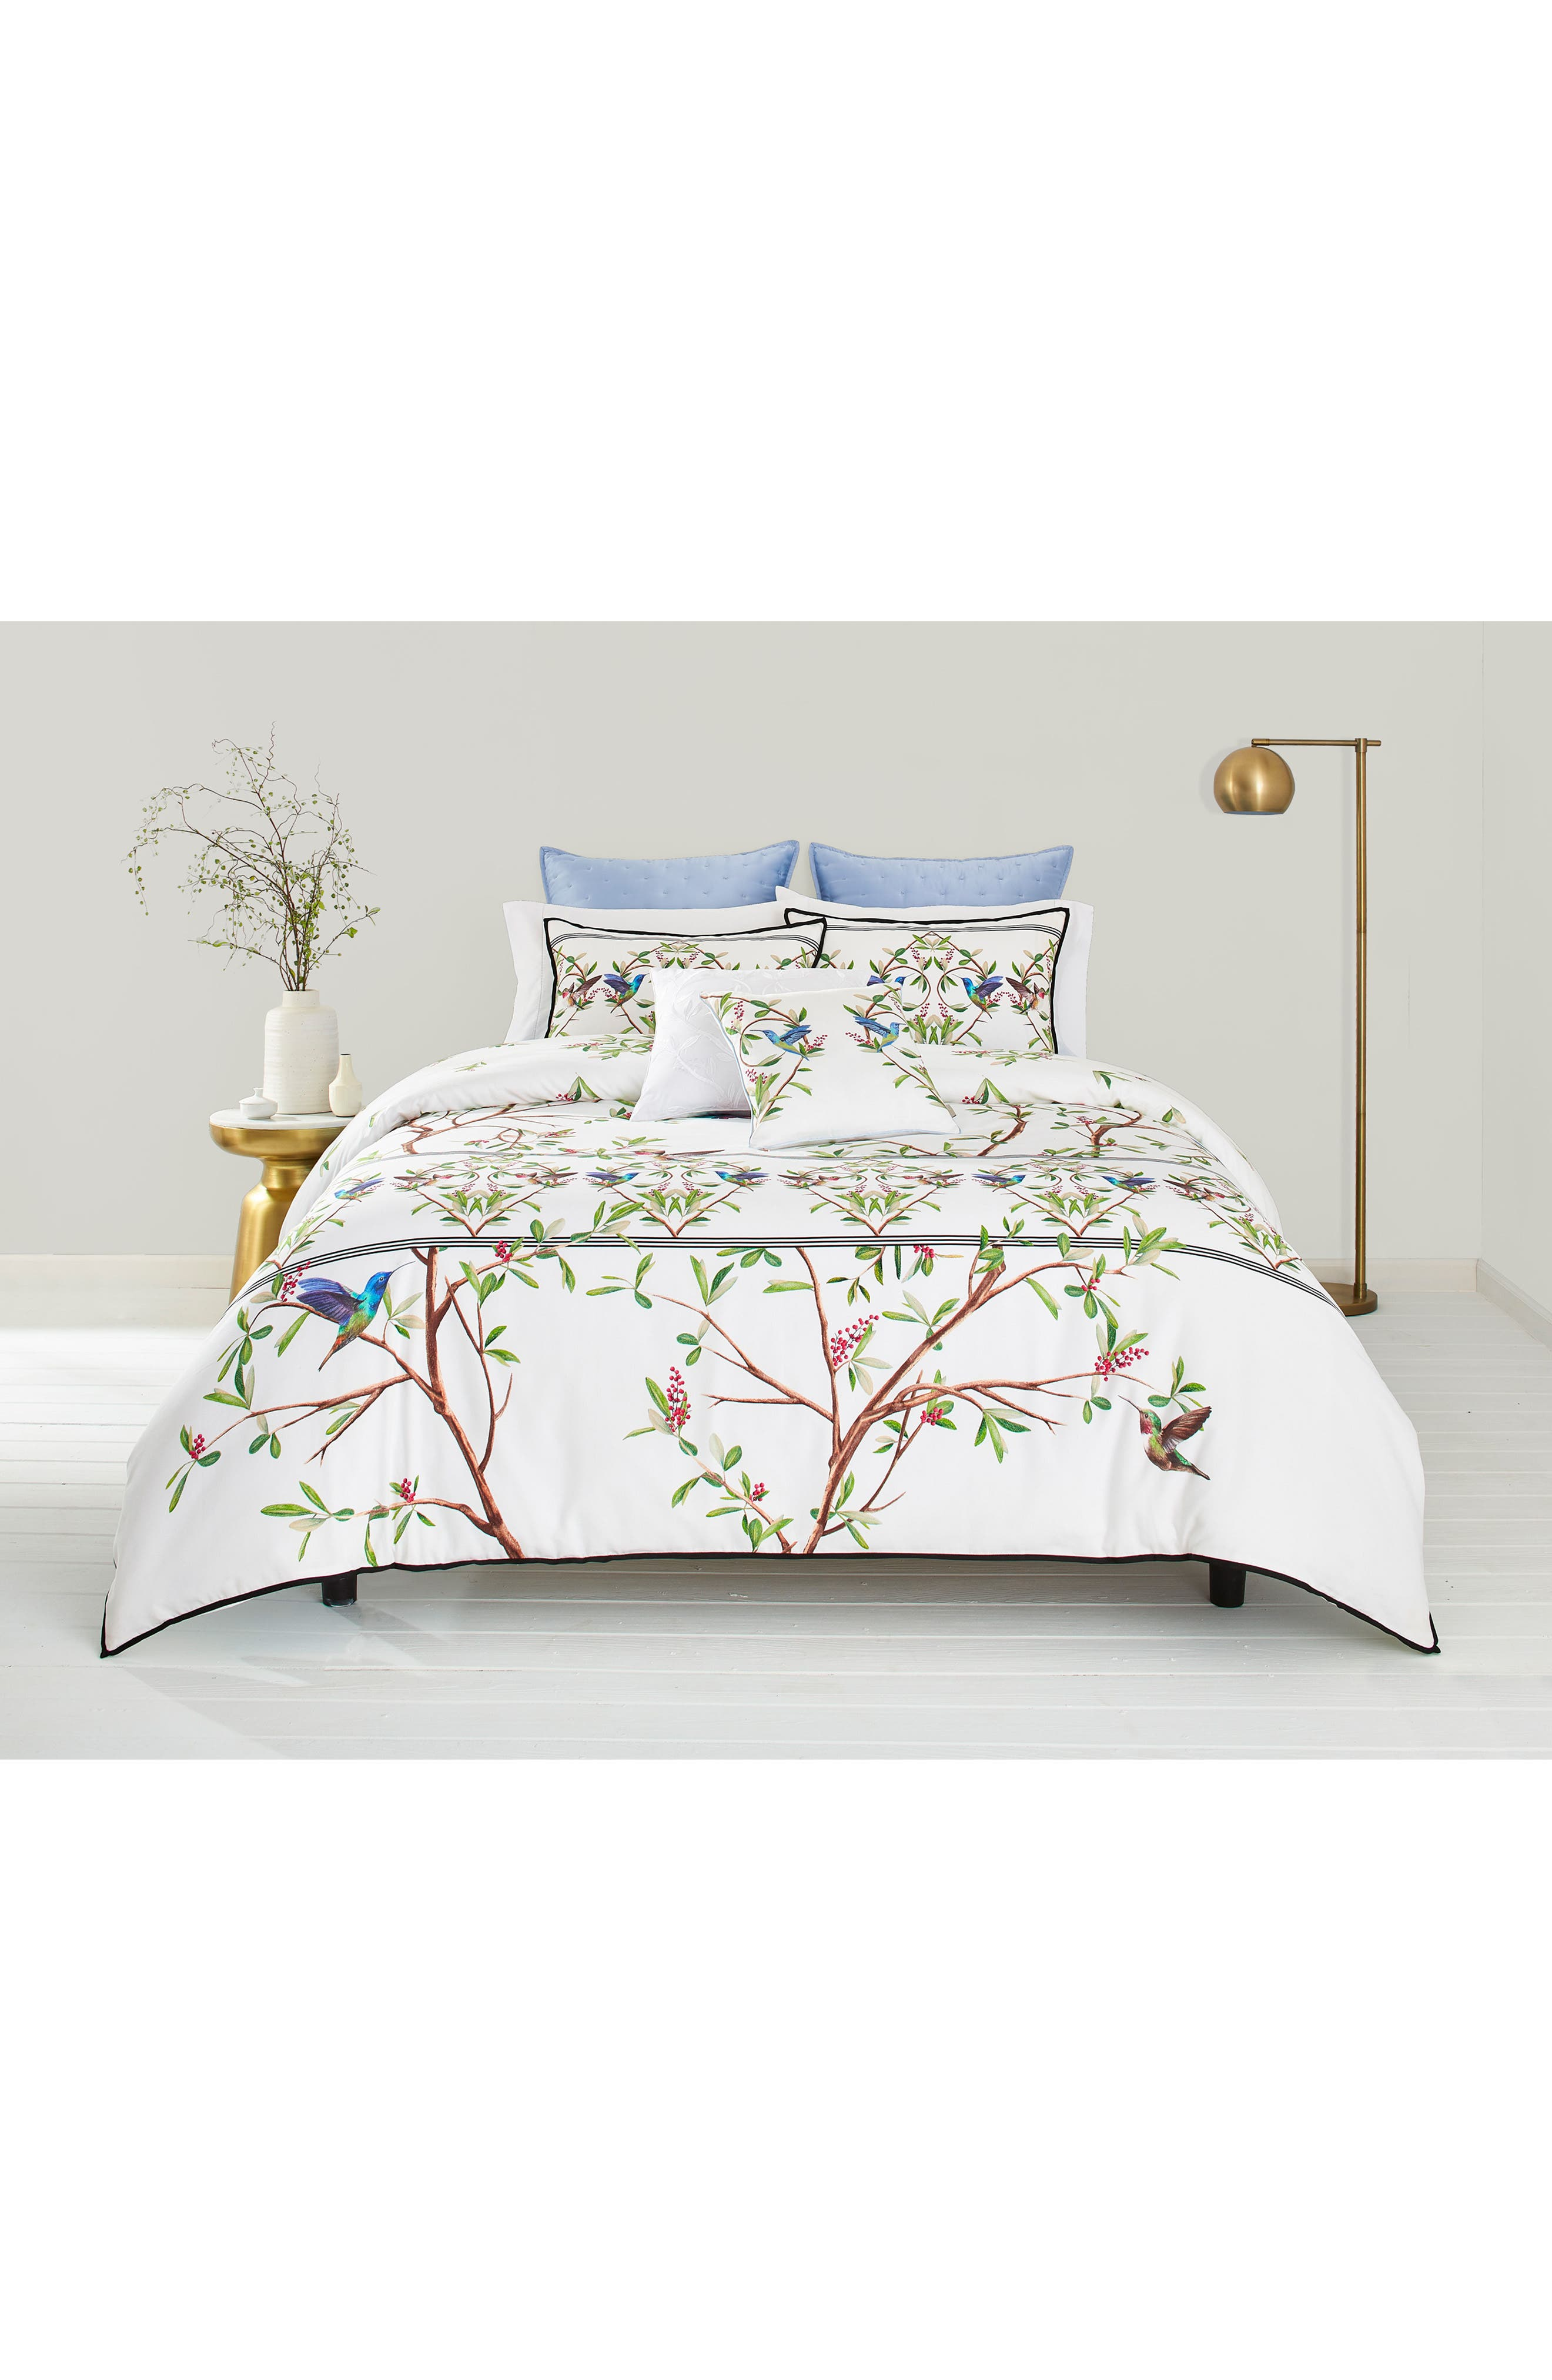 less bed bloomingdales barbara donna s more launches collections bloomingdale fashion bedding karan barry signature designs sets forever